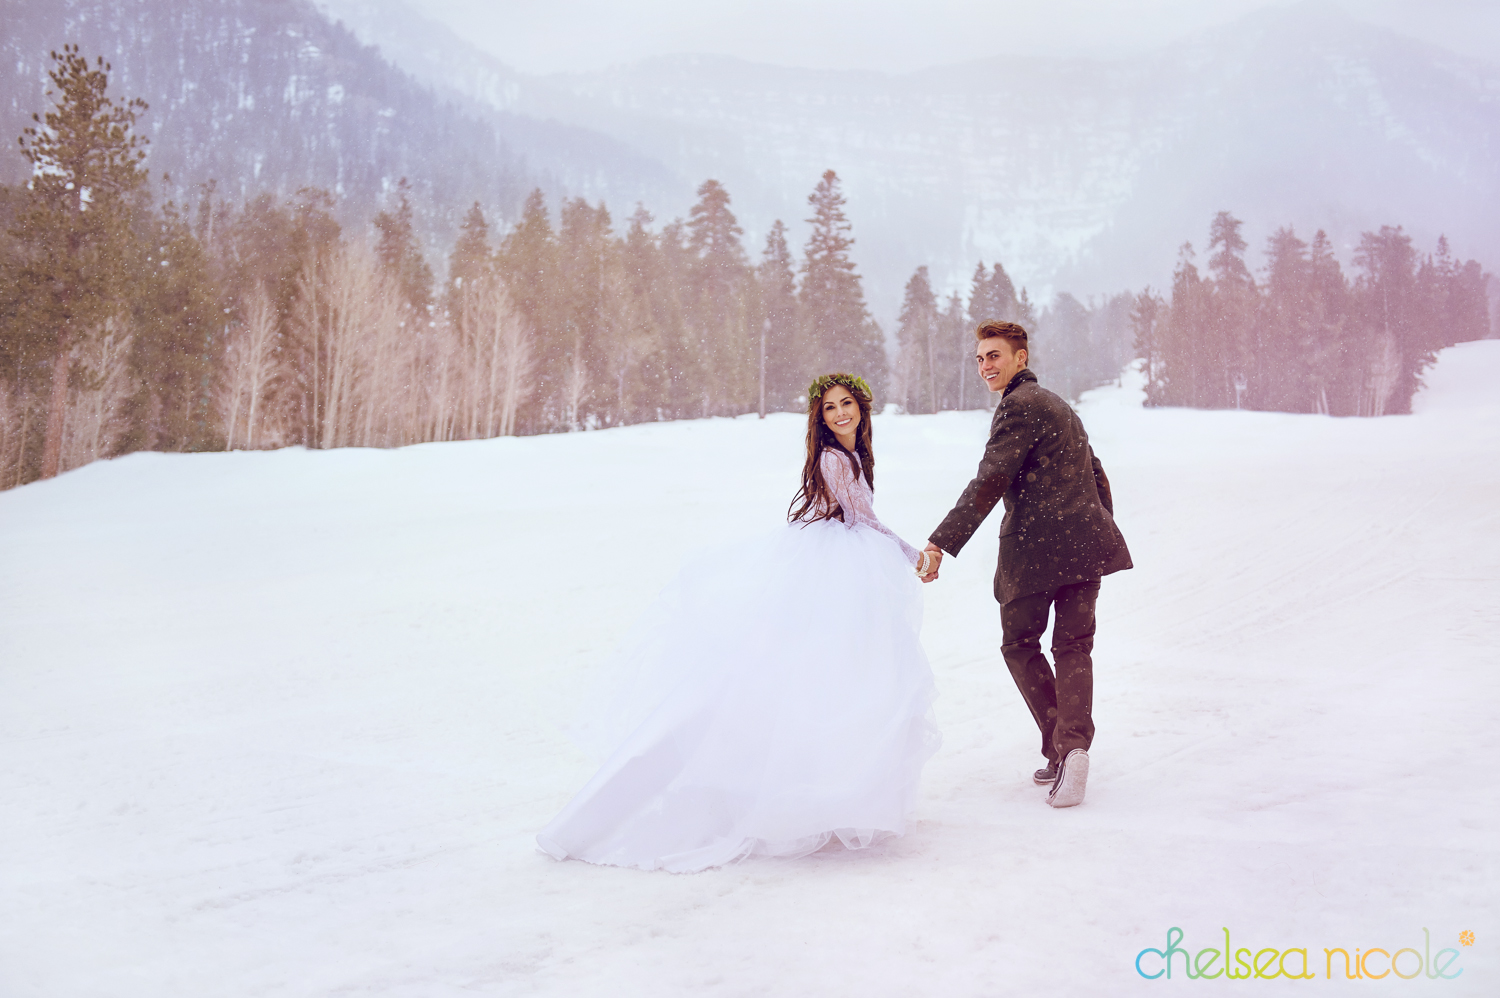 Winter wonderland wedding at Las Vegas Ski and Snowboard Resort from Chelsea Nicole Photography